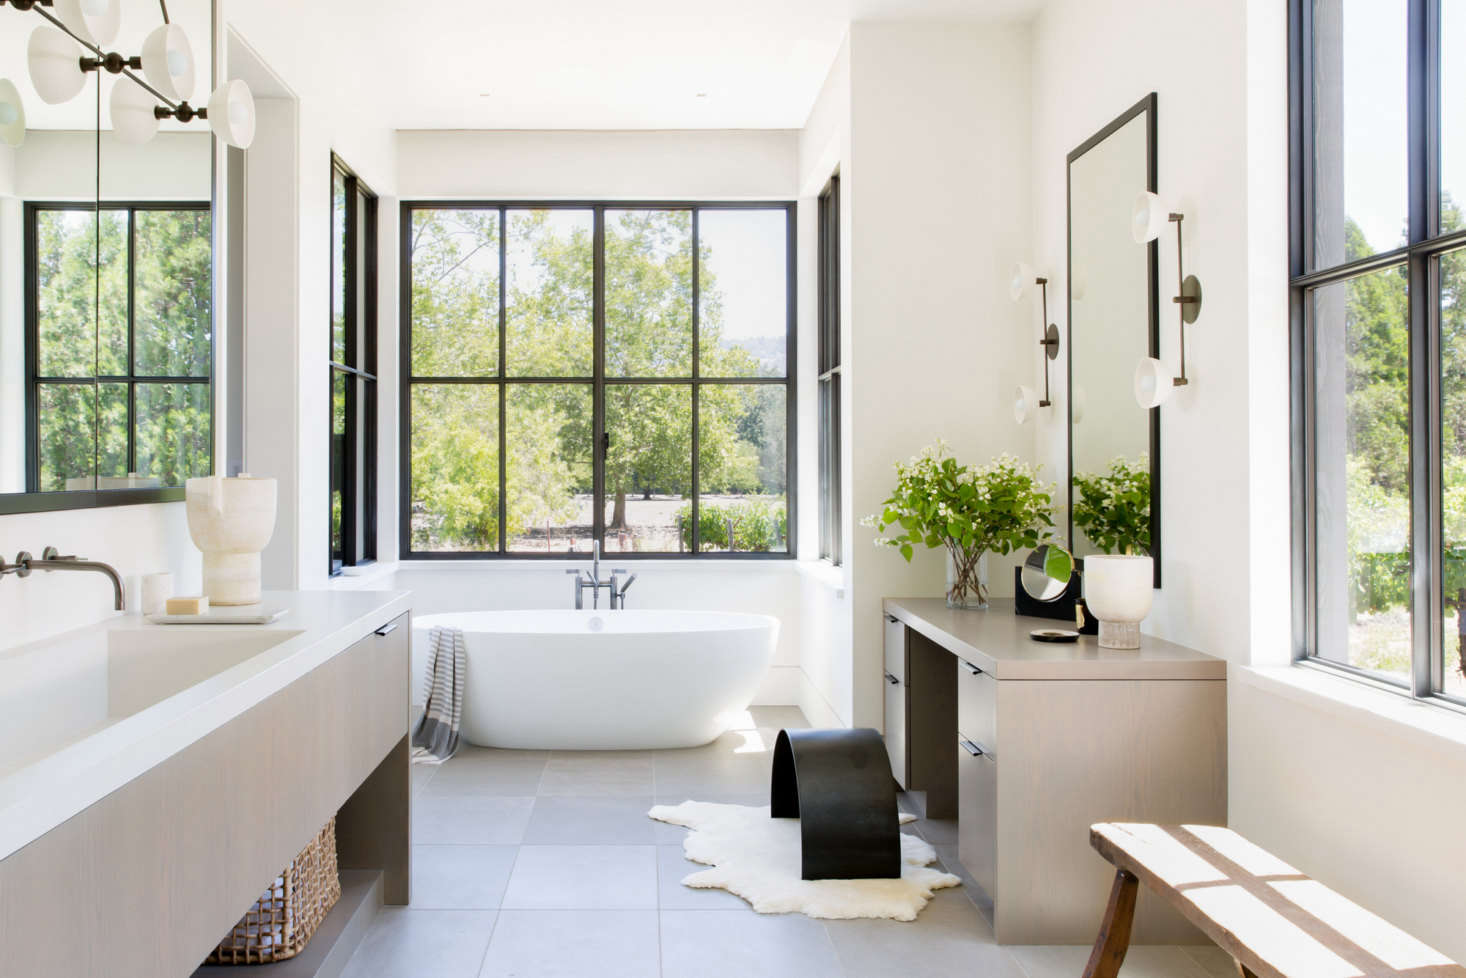 """The bright master bedroom is anchored by a Victoria & Albert Barcelona Soaking Tub. """"It'smy favorite room in the house,"""" Geremia says. """"It's focused on ritual and relaxation."""""""